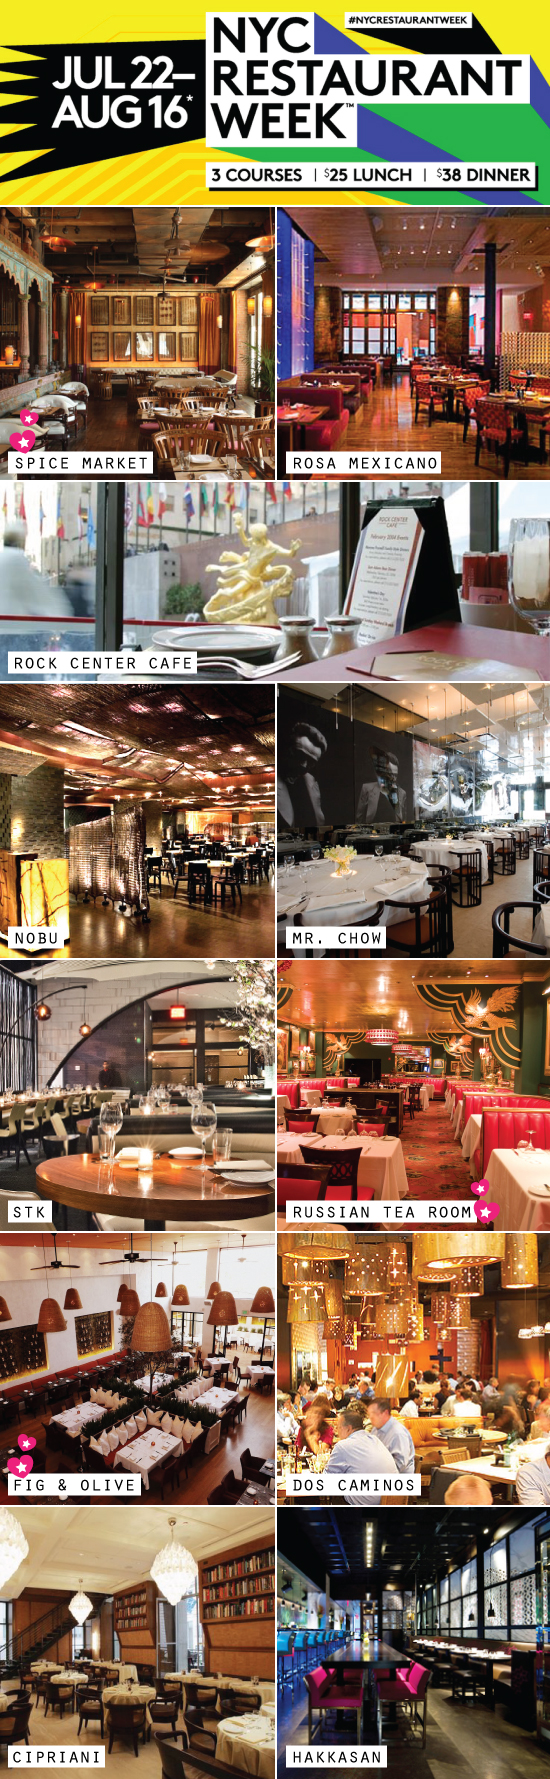 restaurant-week-ny-new-york-nyc-restaurantes-dicas-viagem-travel-tips-onde-comer-almoco-jantar-manhattan-blog-starving